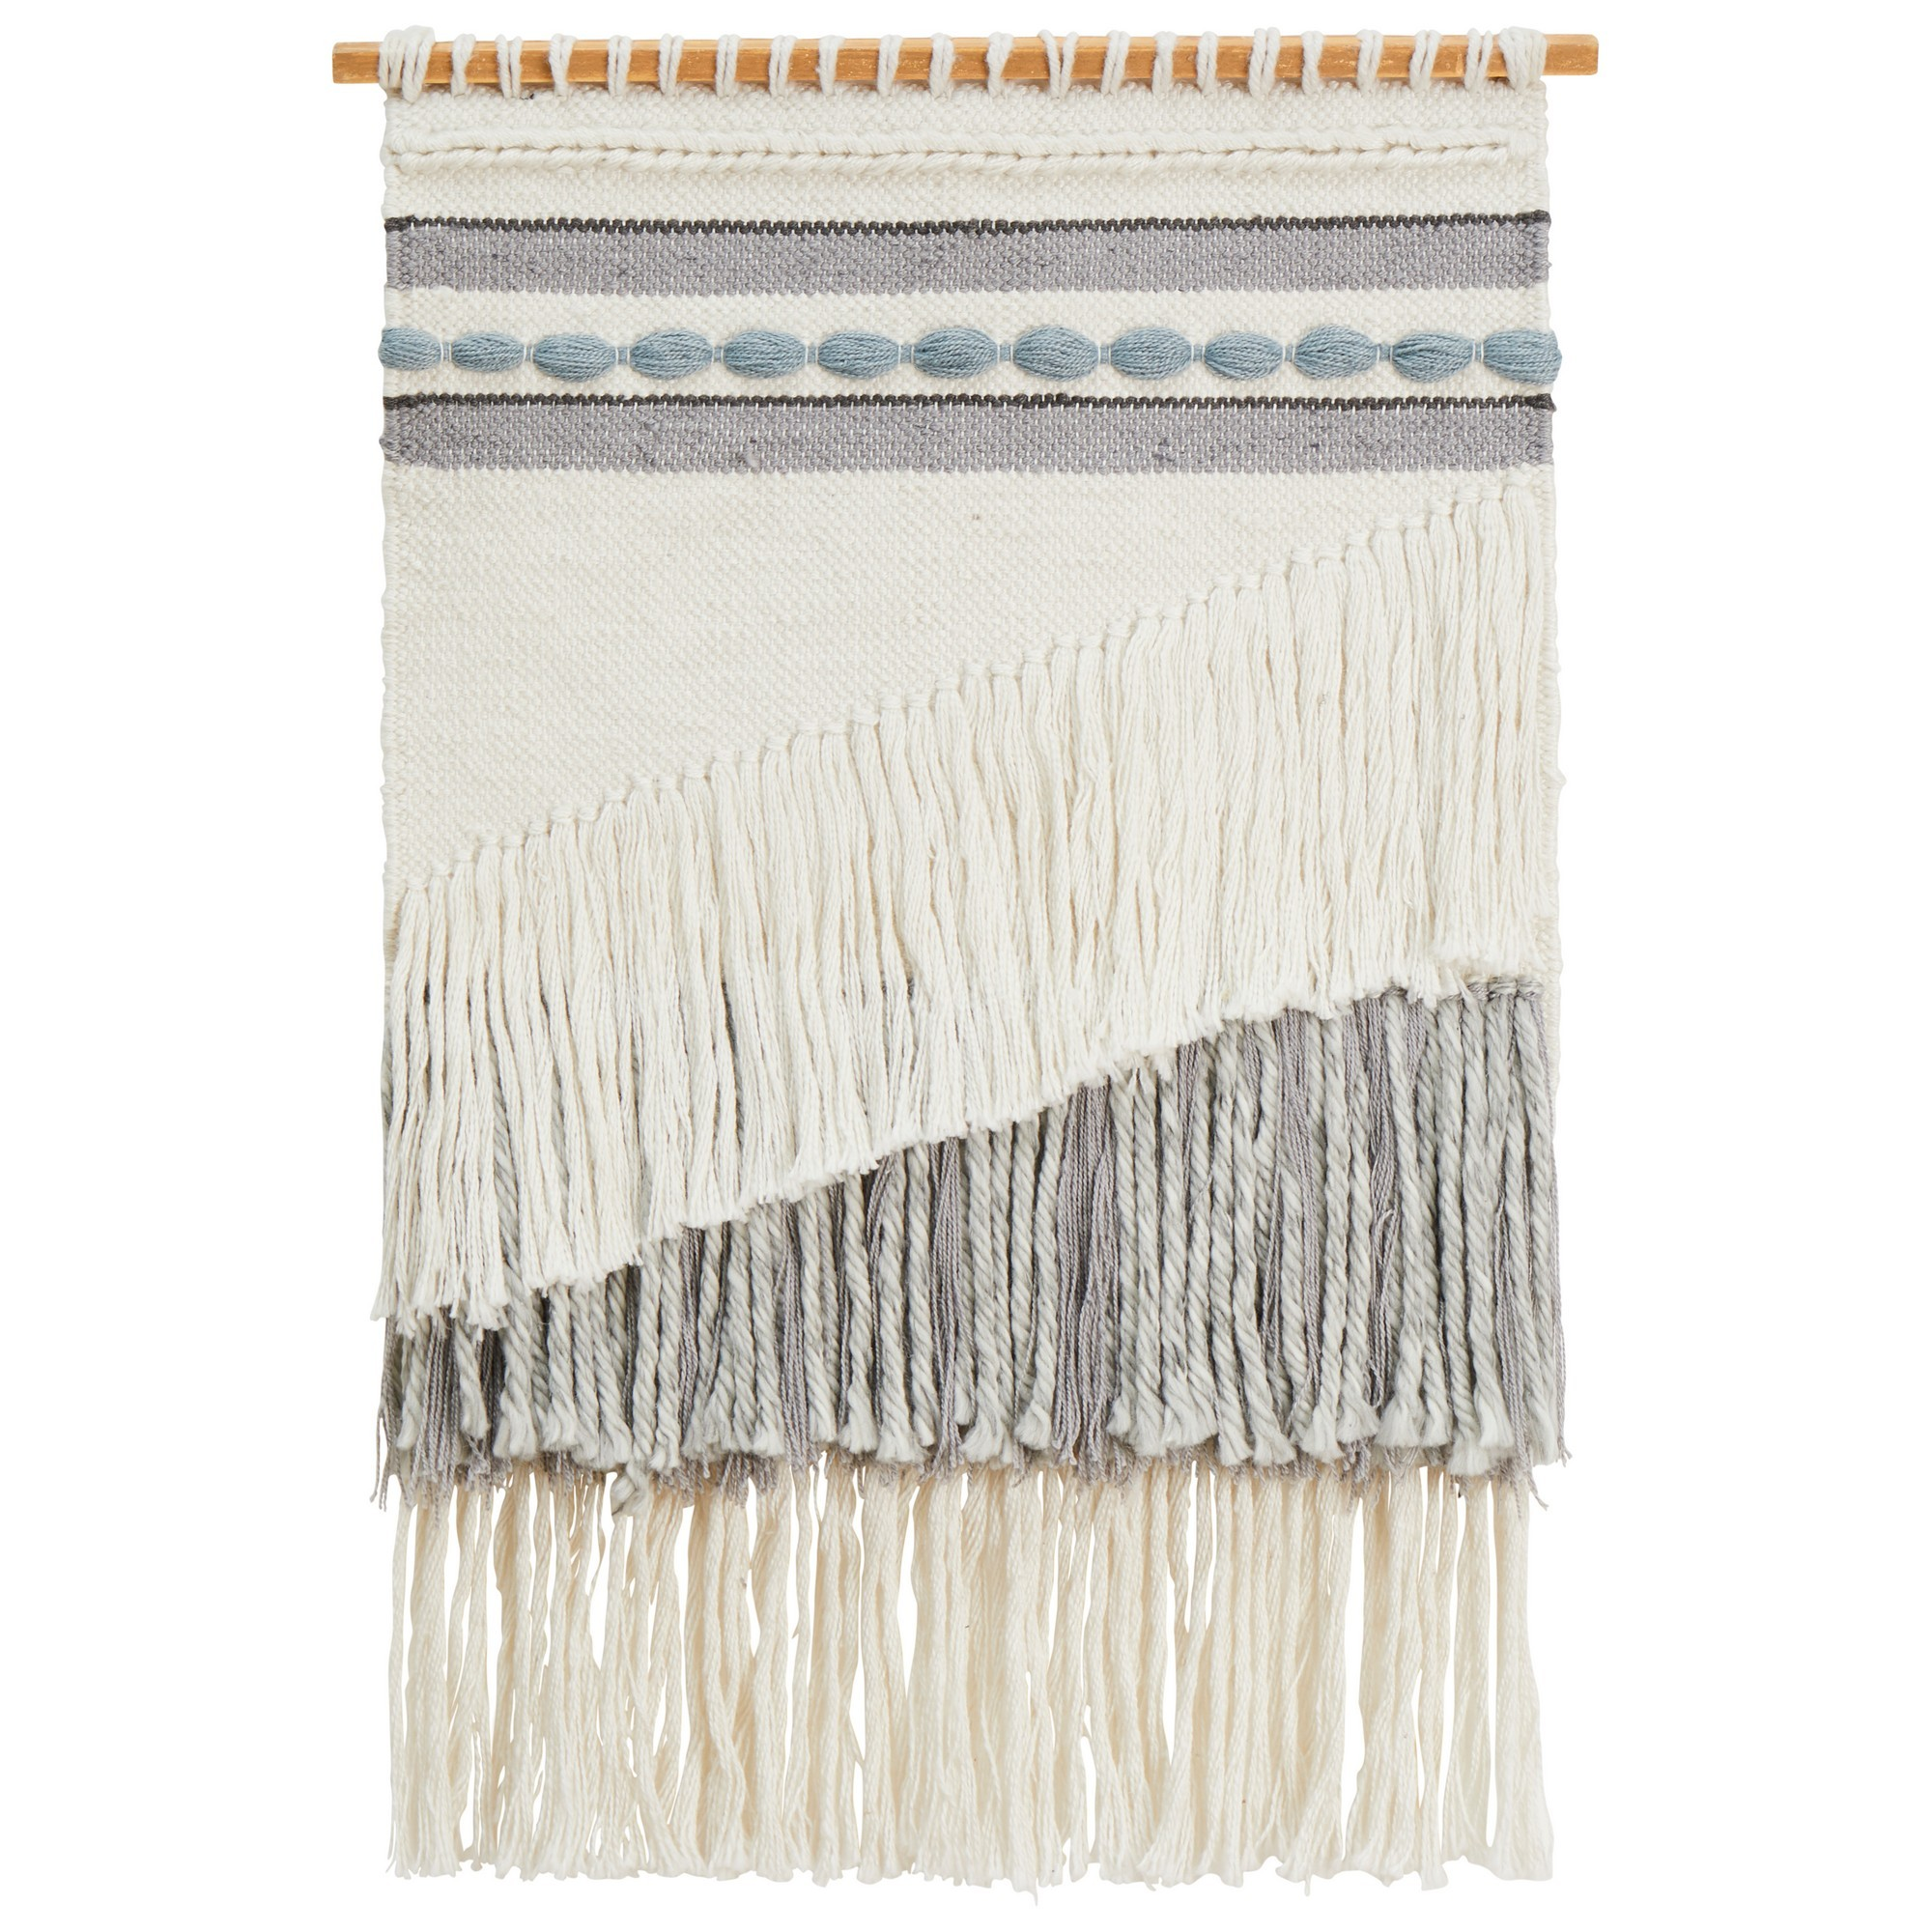 Echo Handcrafted Textured Wall Hanging